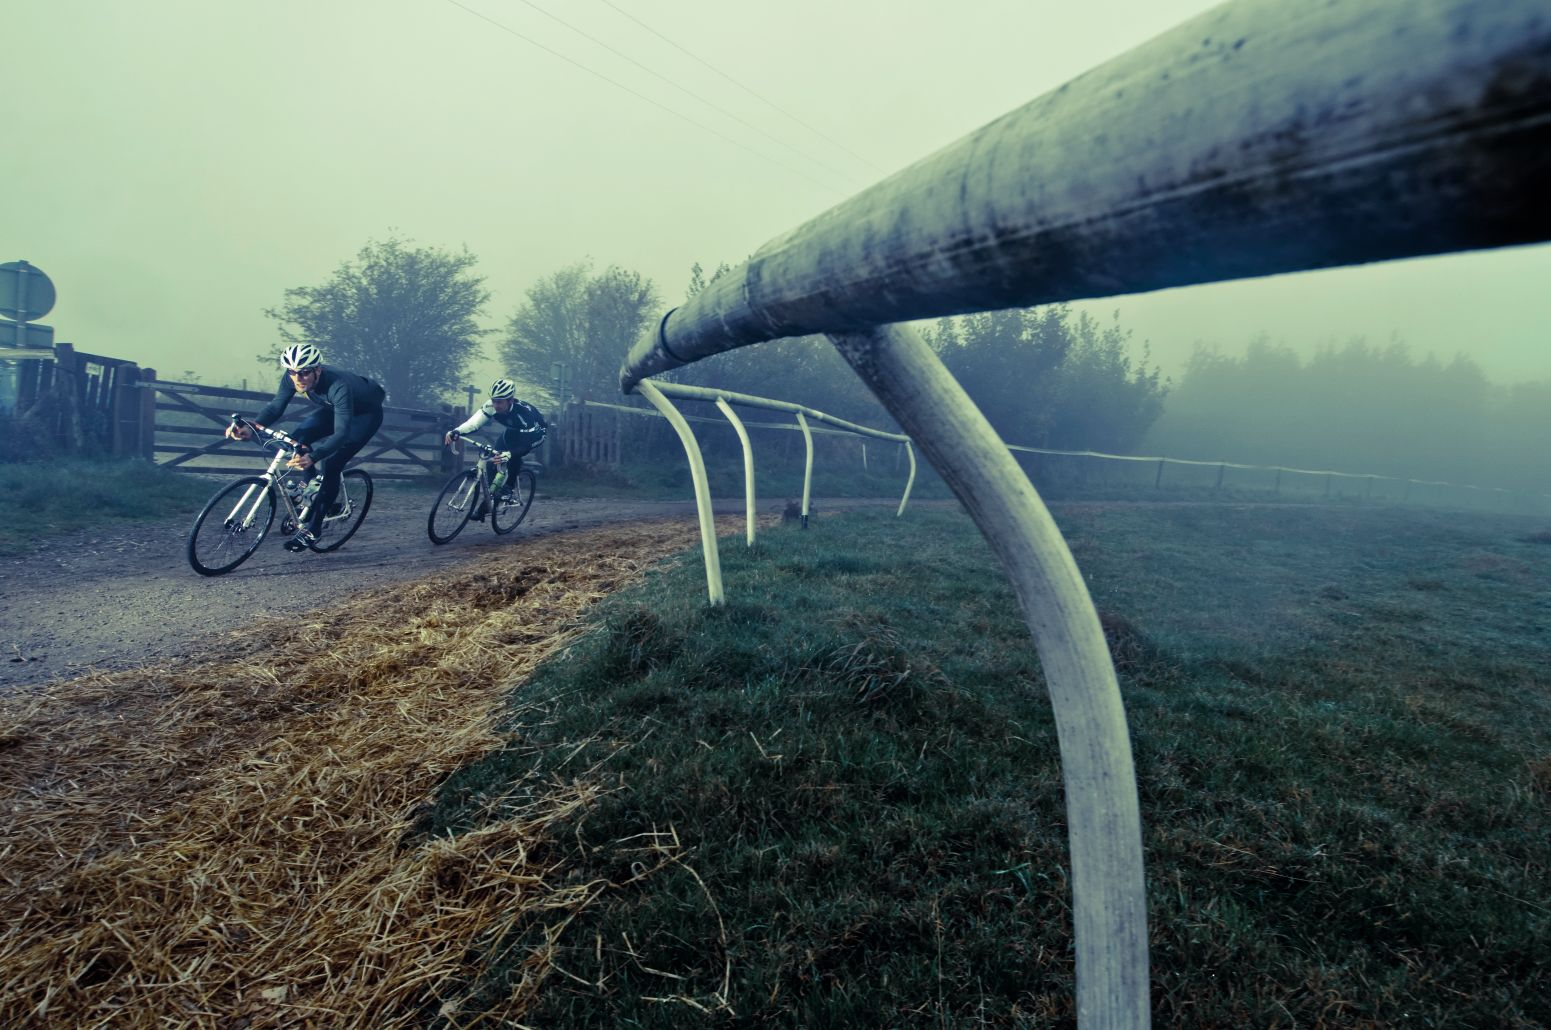 Two cyclists riding fast on a racecourse